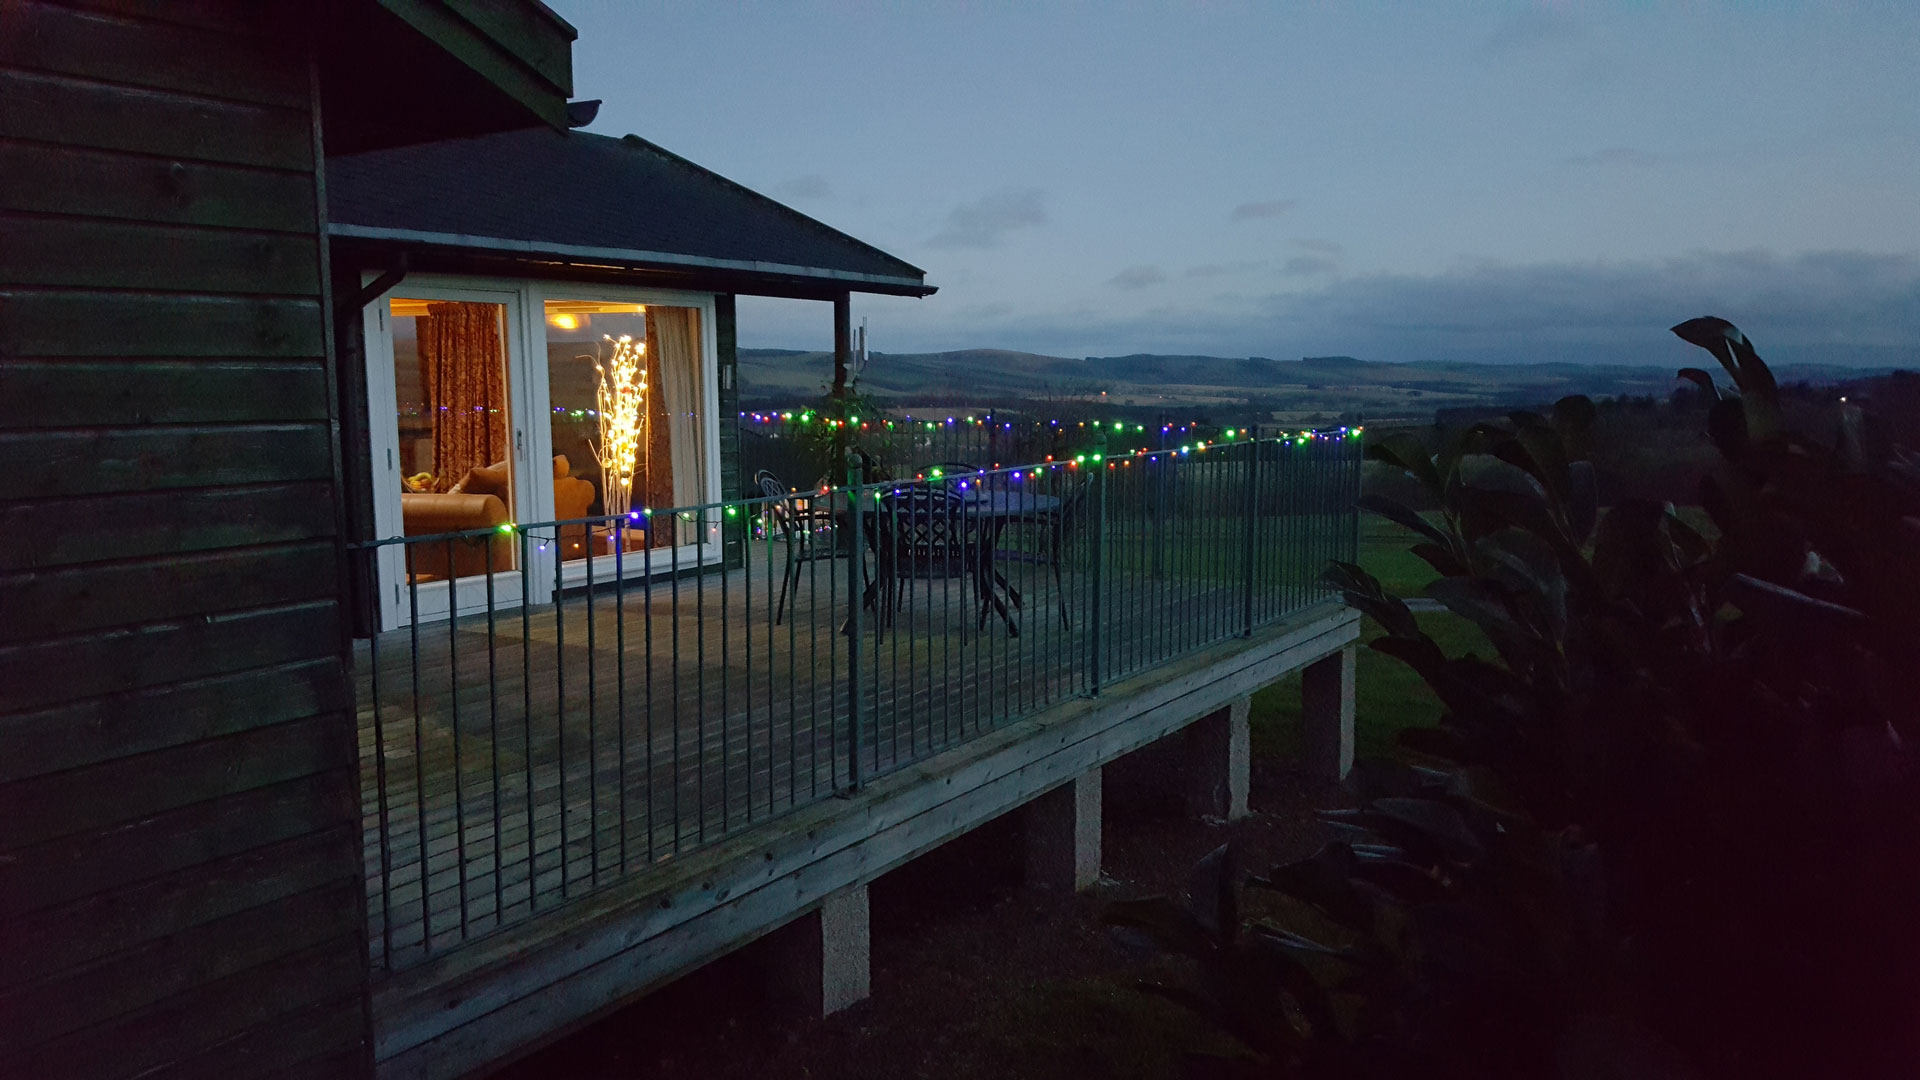 Christmas lights decorating the patio decking area at Airhouses luxury lodges.